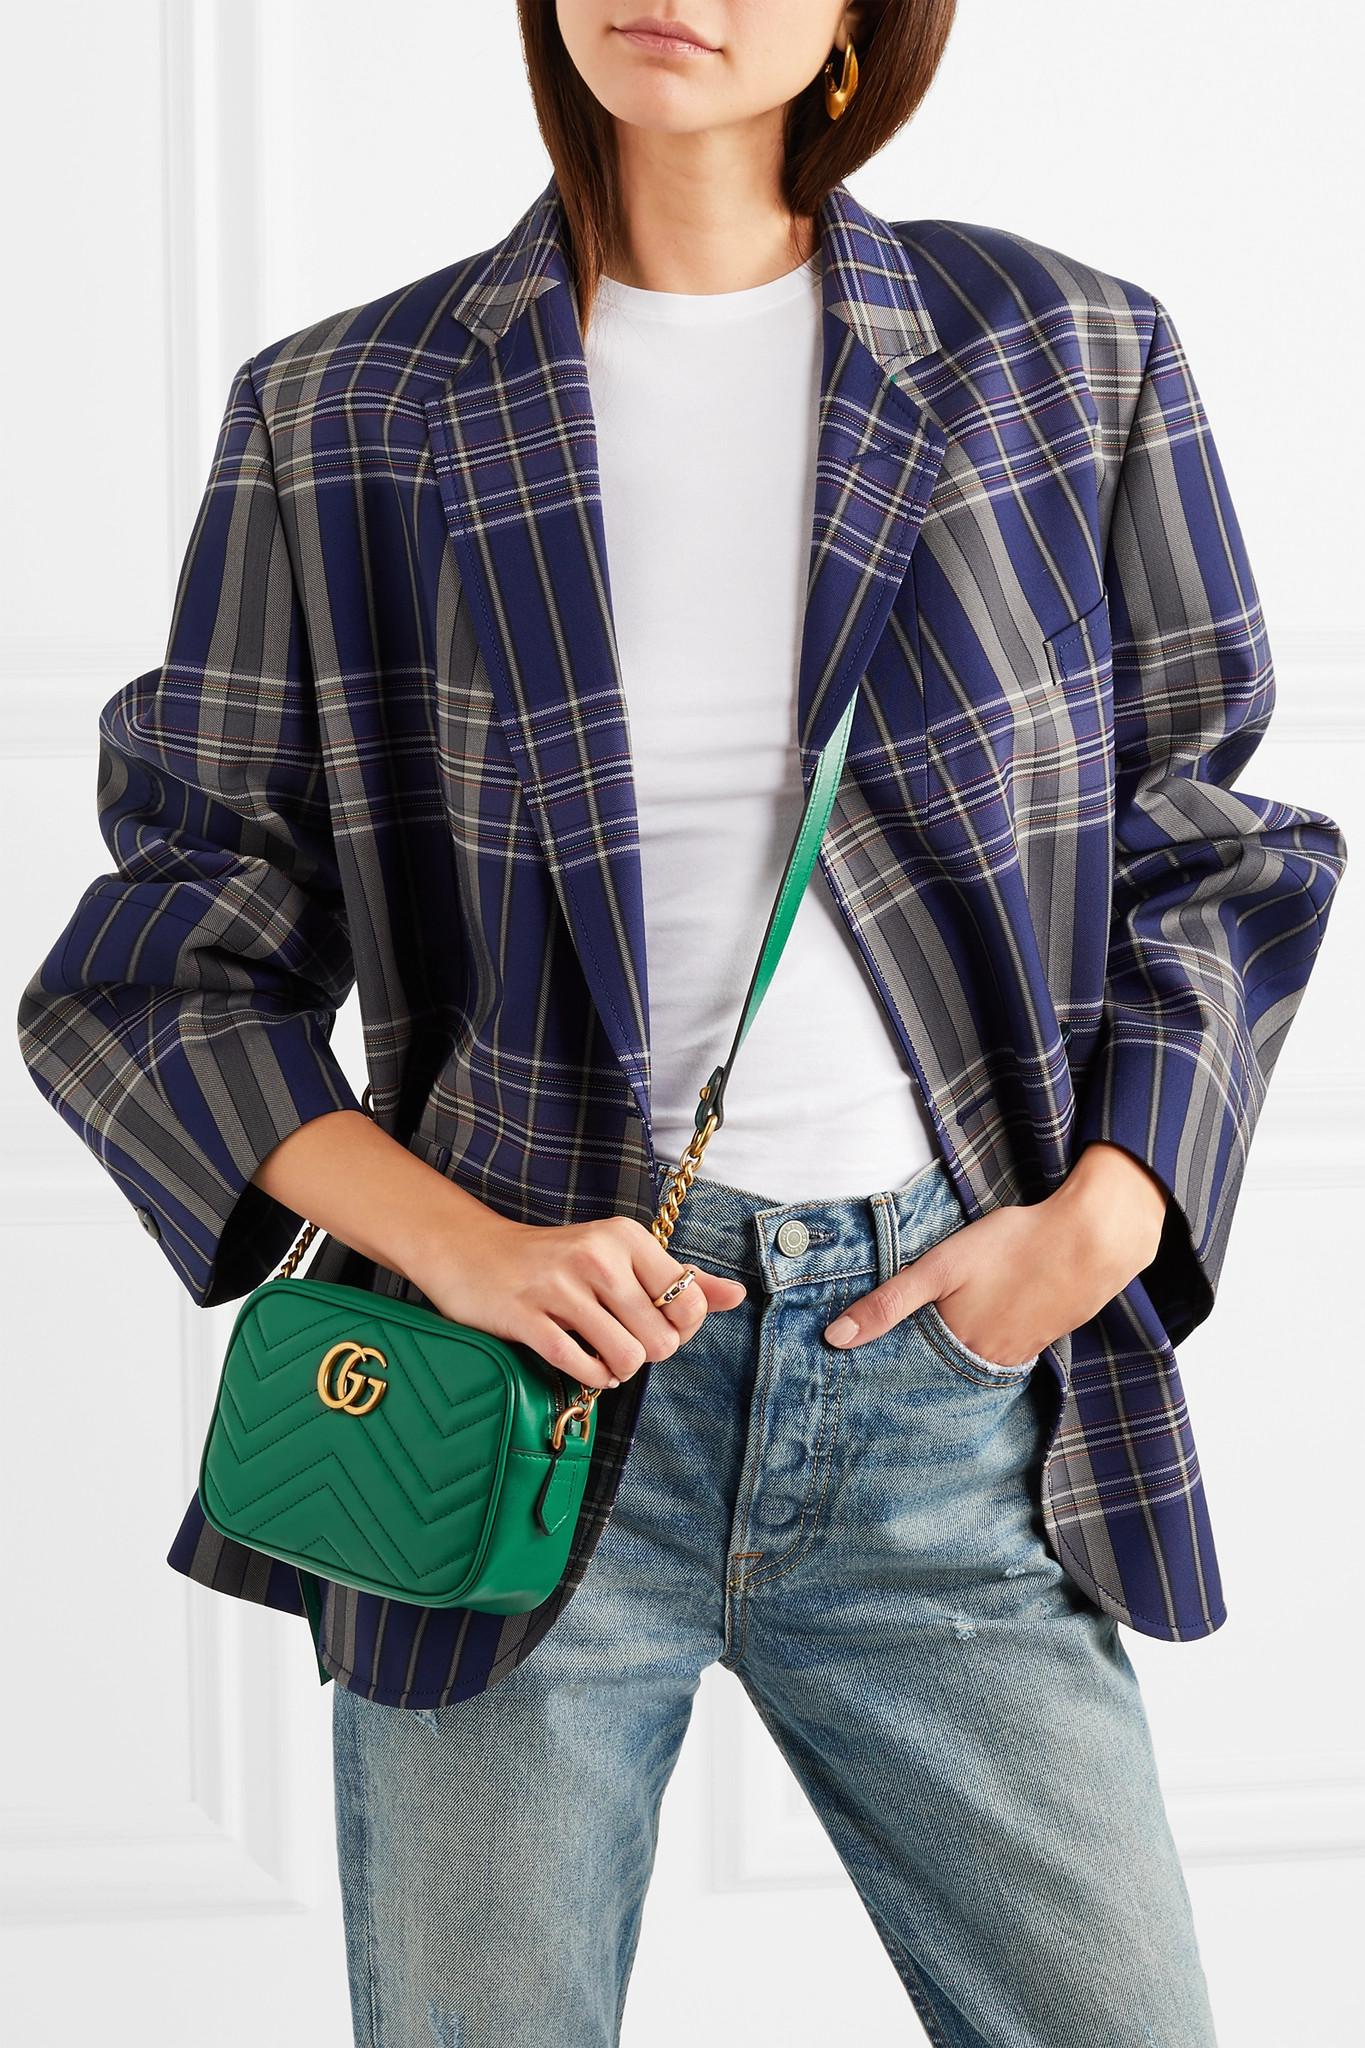 f3b7bfe61de Lyst - Gucci Gg Marmont Camera Mini Quilted Leather Shoulder Bag in ...